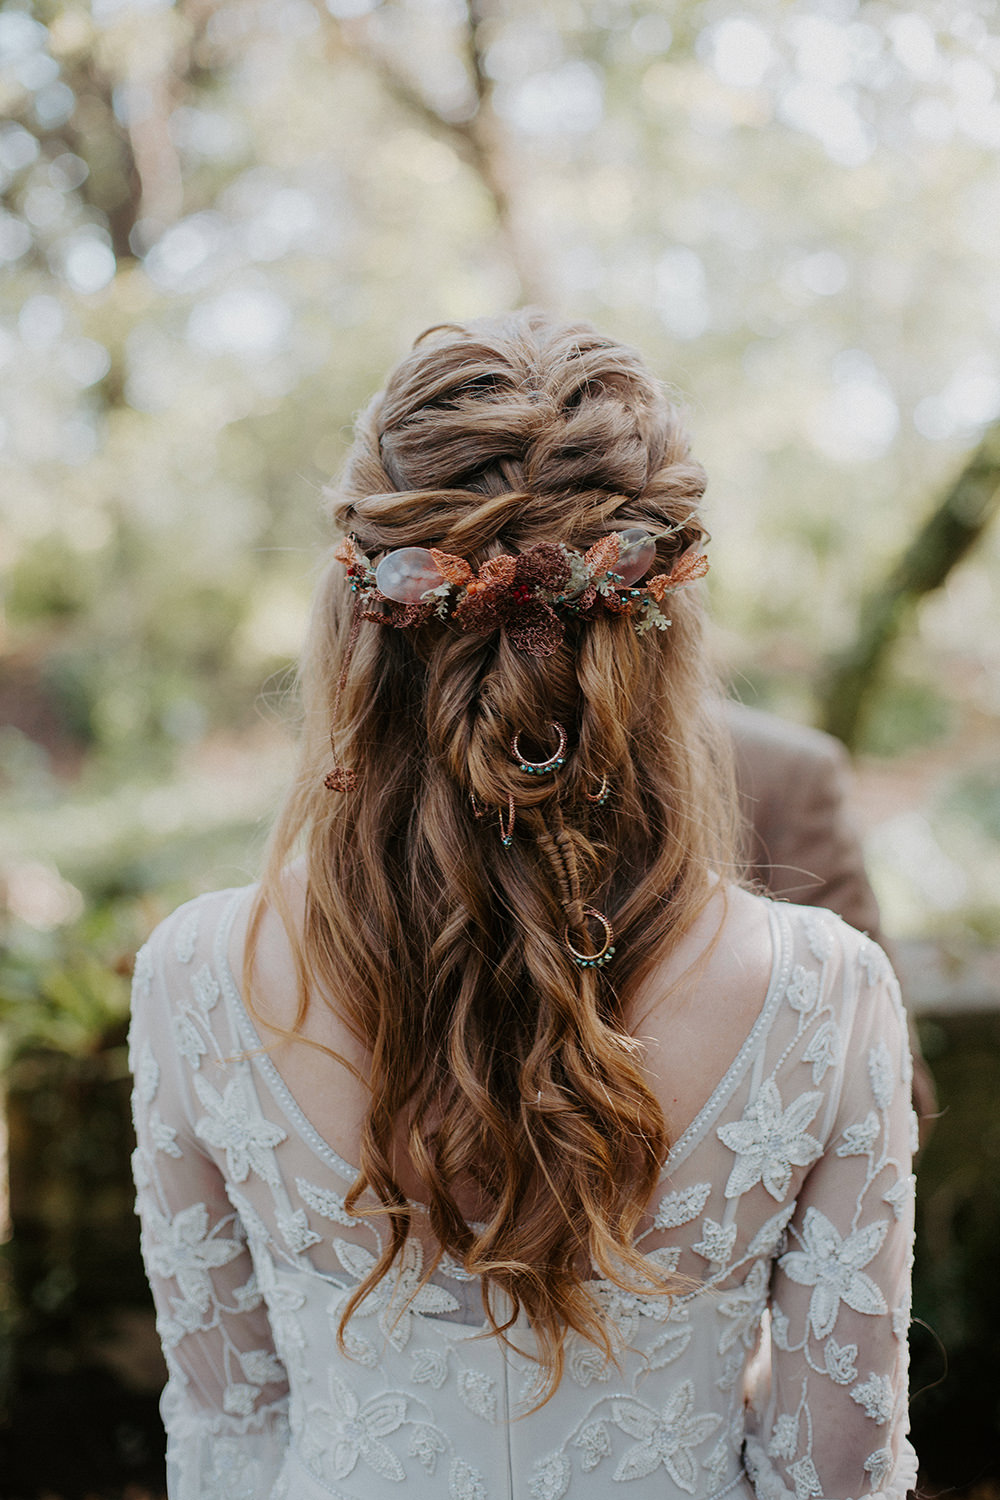 Bride Bridal Hair Style Up Do Half Up Half Down Plaits Braids Flowers Accessory Boho Wedding Ideas The Enlight Project